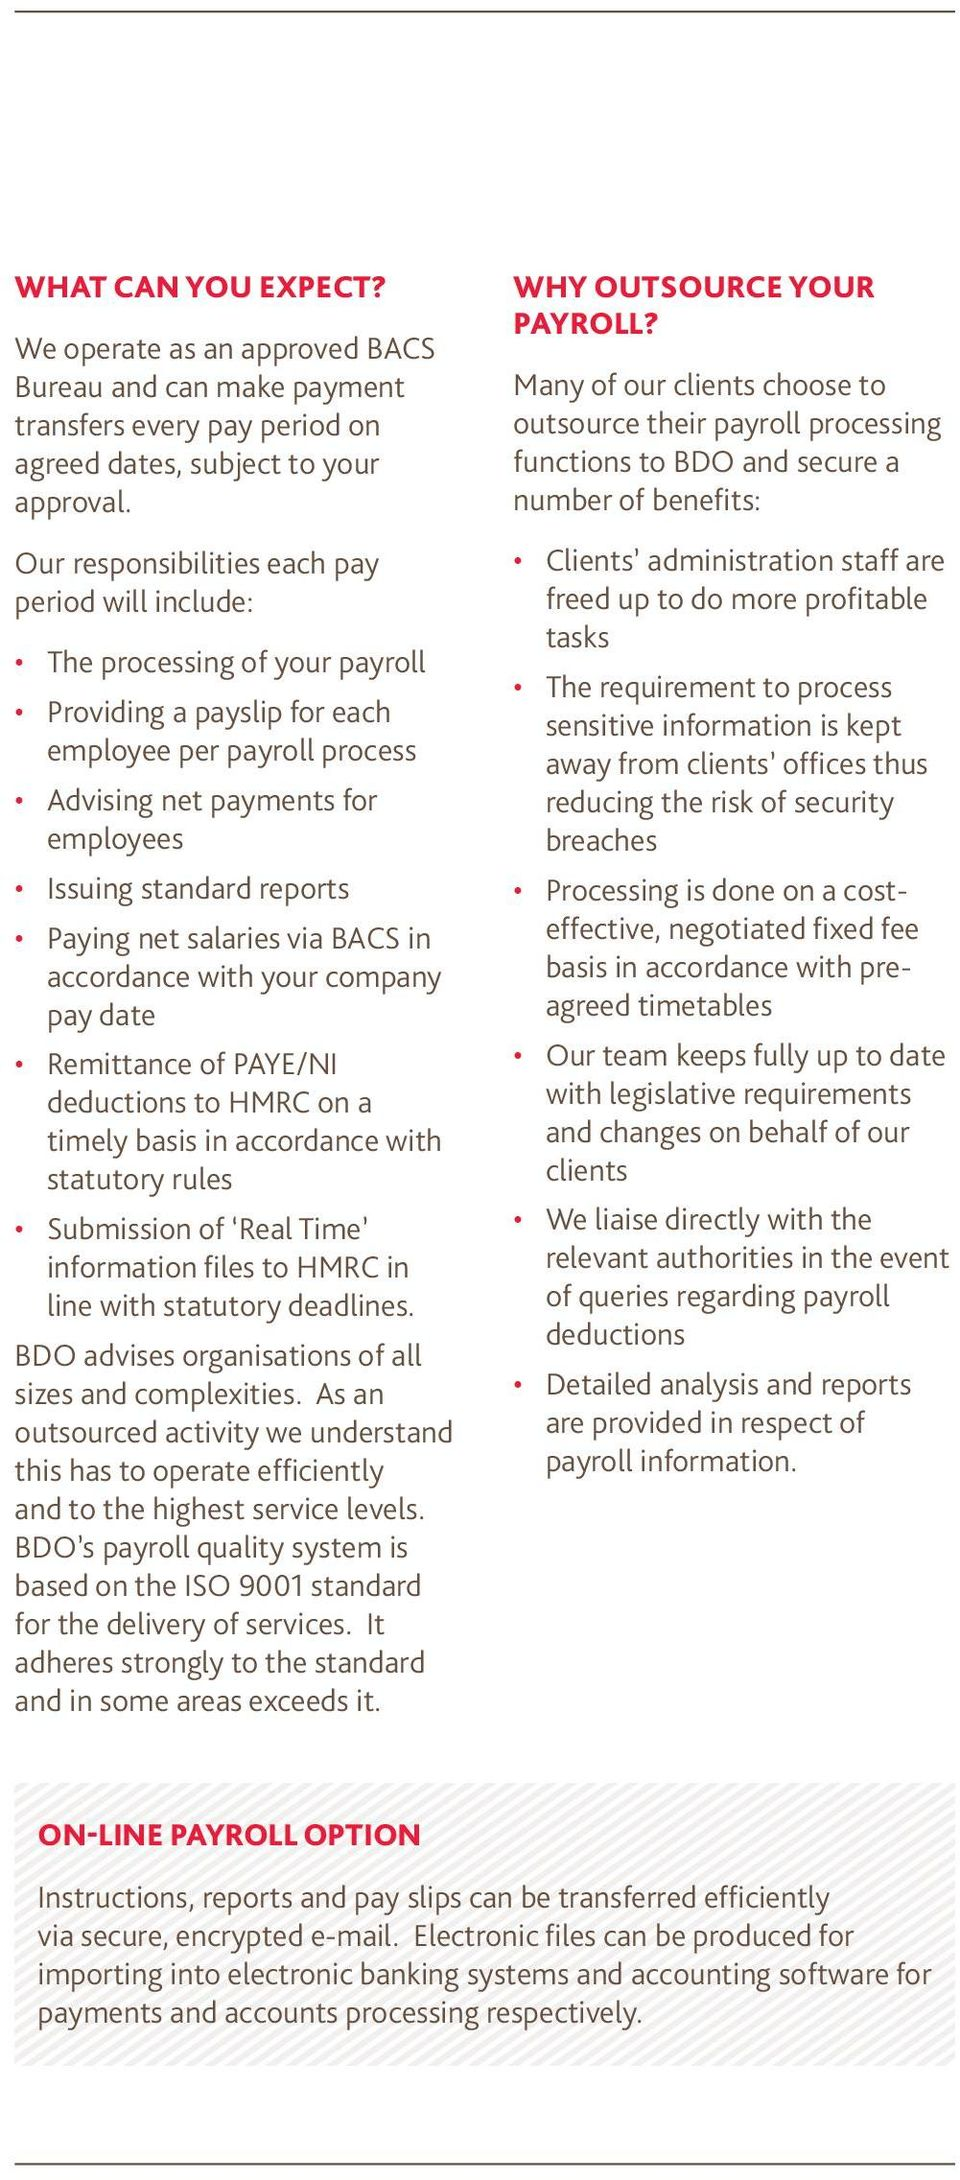 reports Paying net salaries via BACS in accordance with your company pay date Remittance of PAYE/NI deductions to HMRC on a timely basis in accordance with statutory rules Submission of Real Time